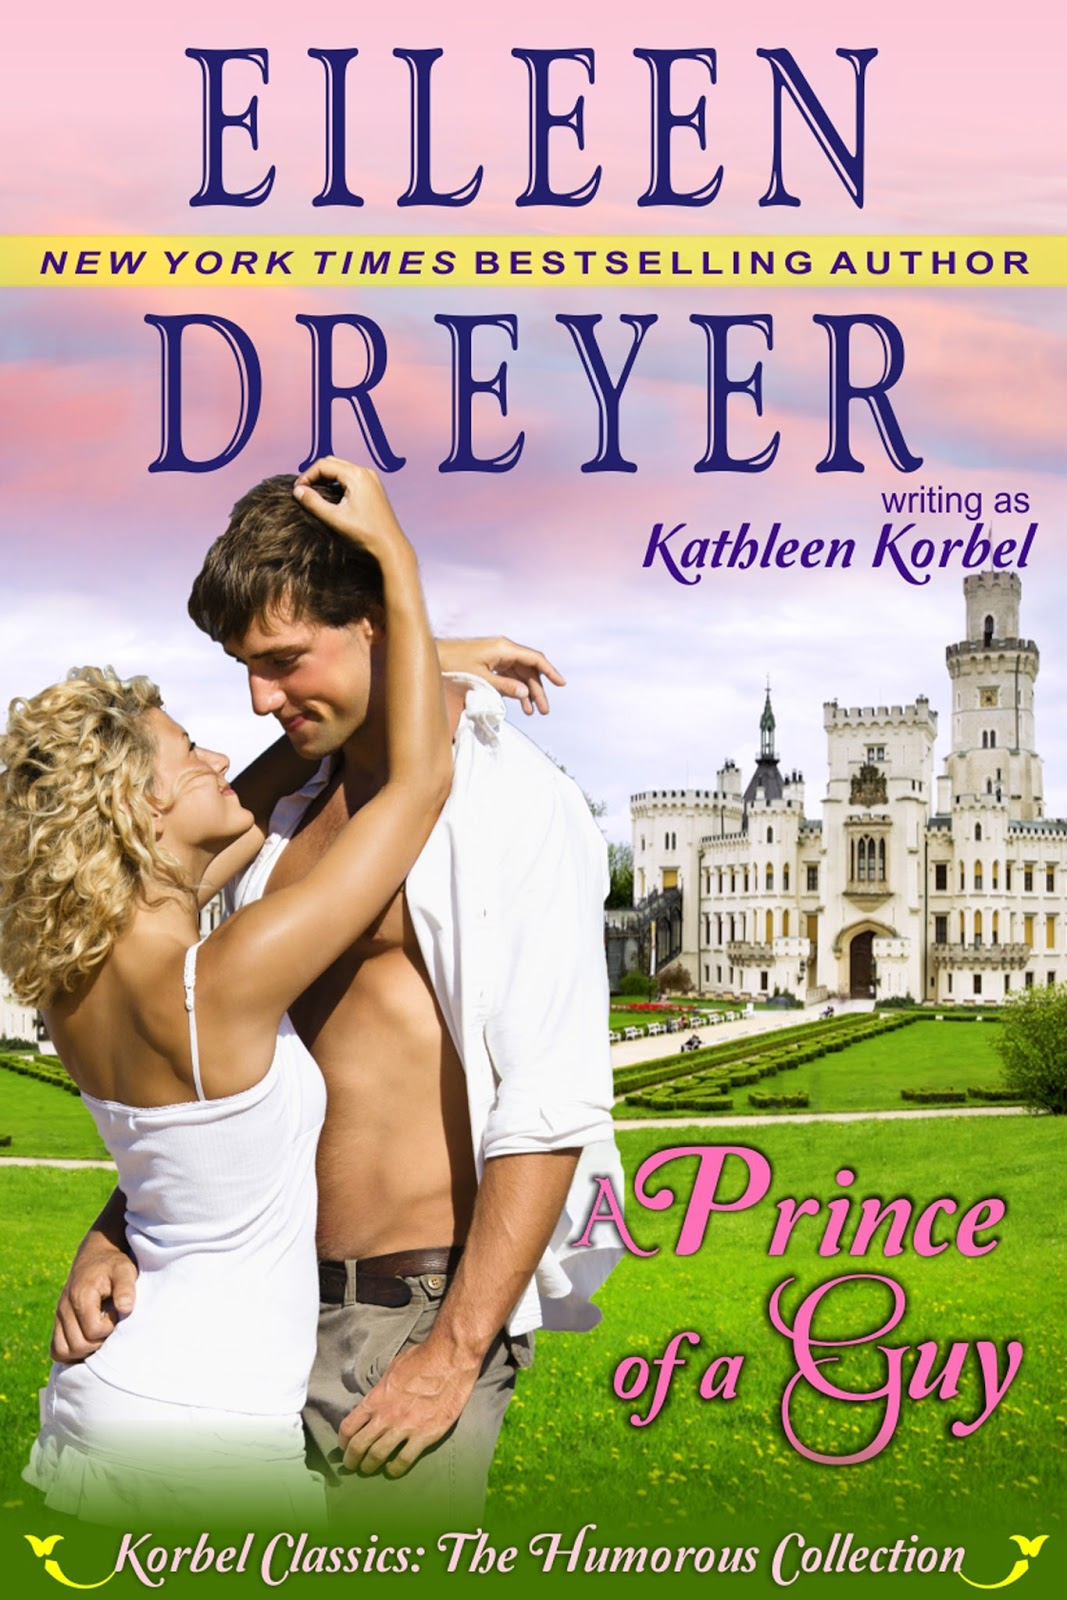 A Prince of a Guy by Eileen Dreyer